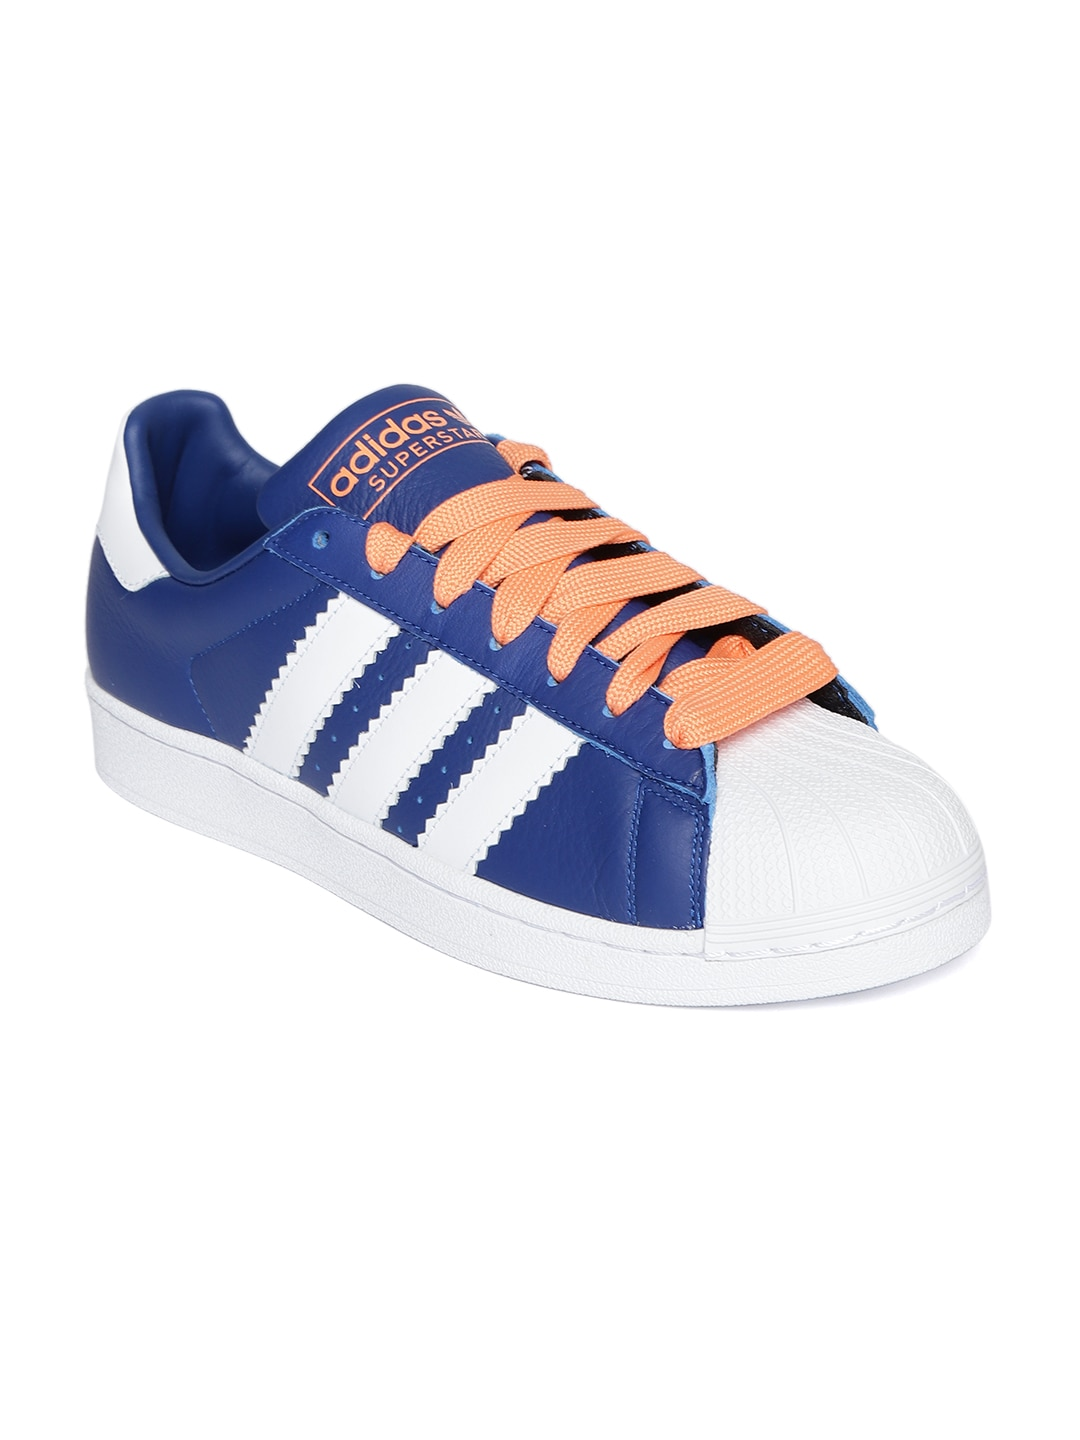 detailed pictures 477b9 91c8d Adidas Superstar Shoes - Buy Adidas Superstar Shoes Online - Myntra